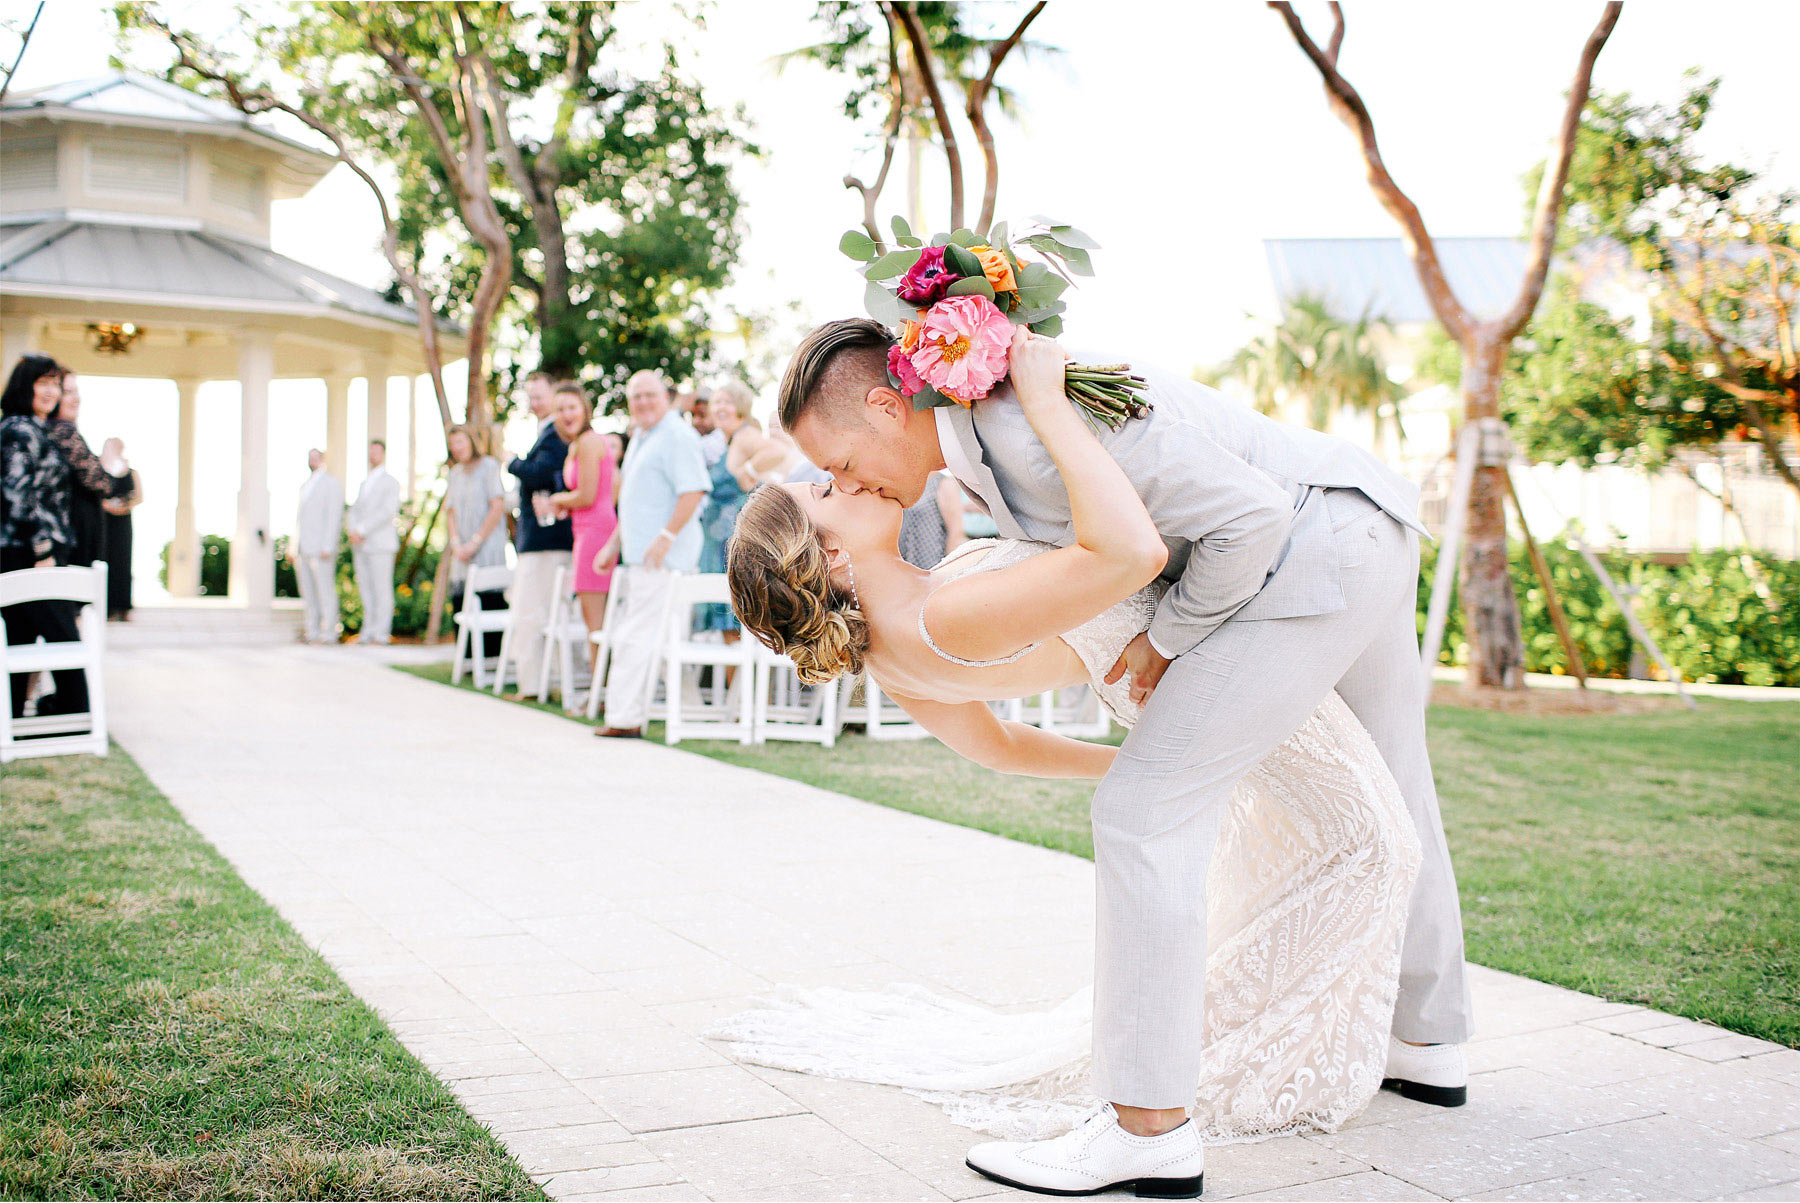 15-Key-Largo-Florida-Keys-Wedding-Photographer-by-Andrew-Vick-Photography-Playa-Largo-Resort-and-Spa-Hotel-Destination-Winter-Ceremony-Bride-Groom-Recessional-Dip-Kiss-Carrie-and-Brian.jpg